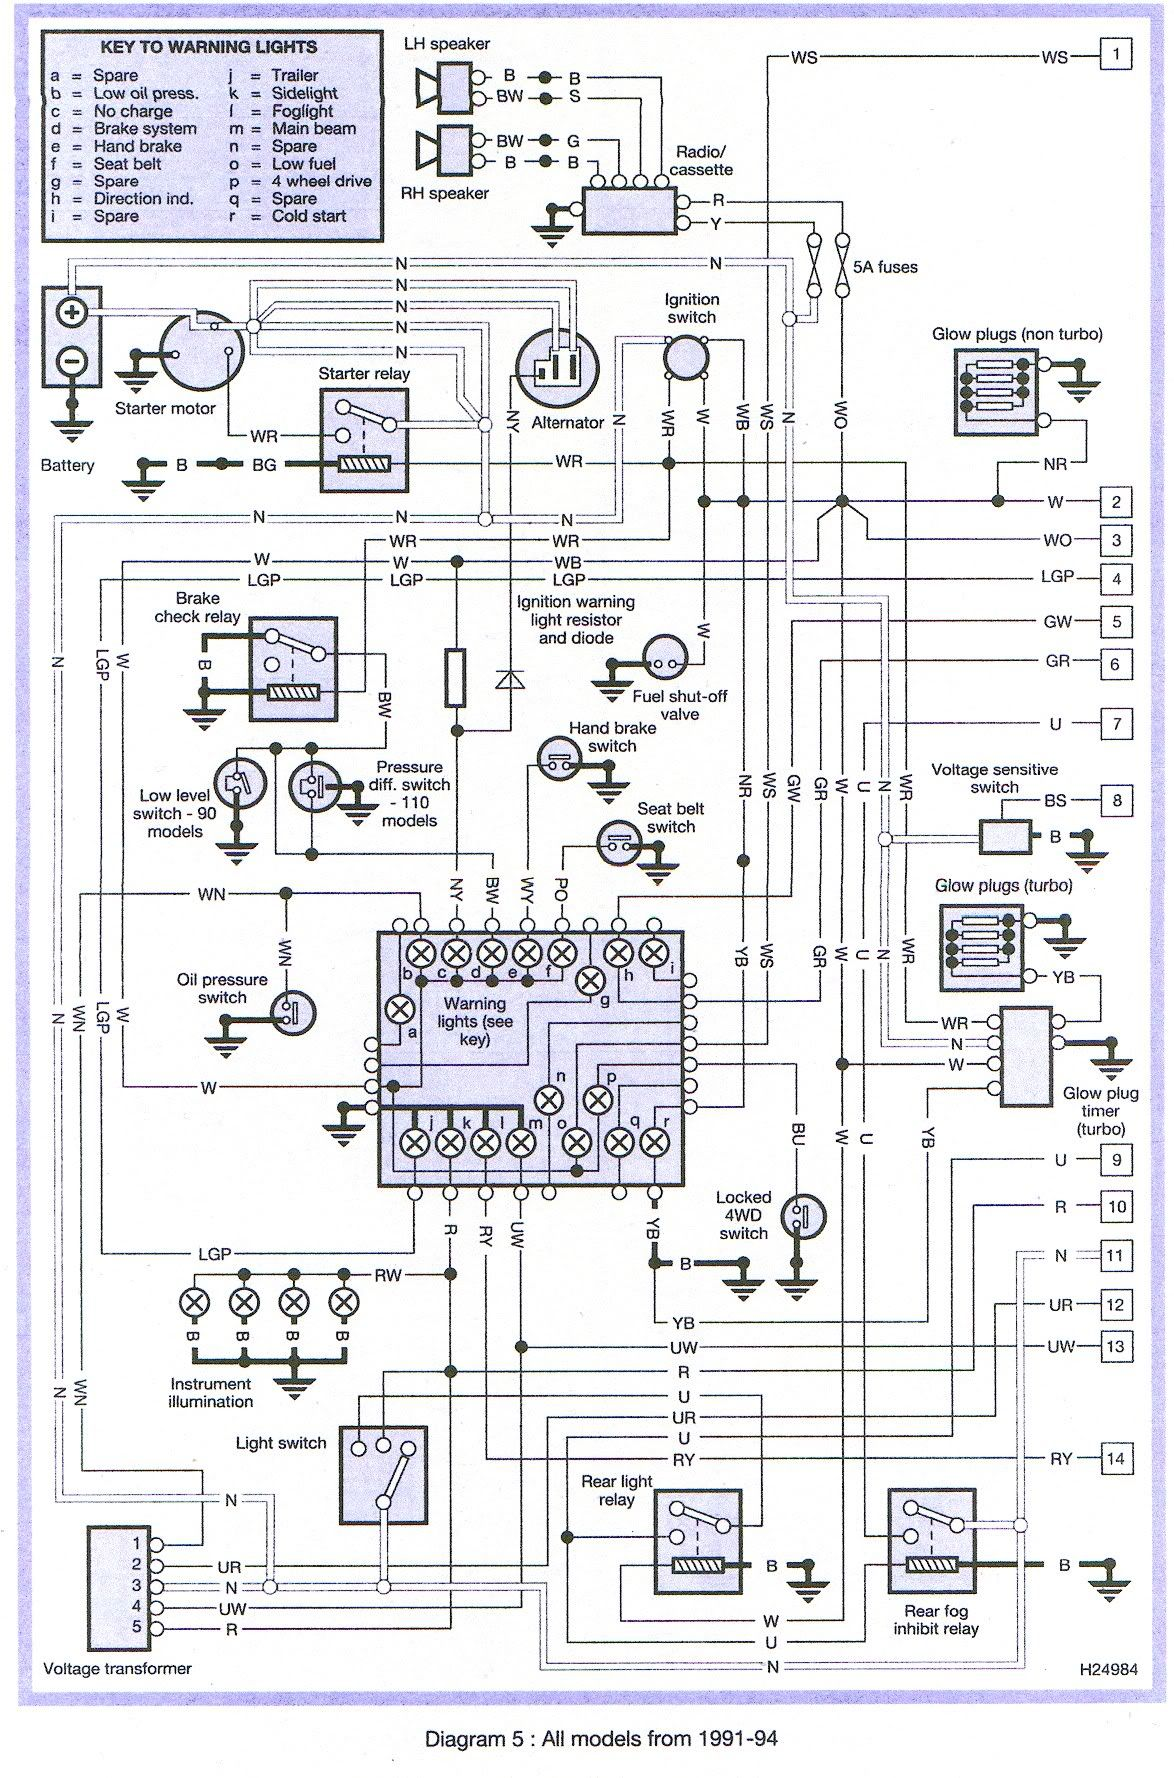 Freelander 2 Wiring Diagram 2003 Chevy Tahoe Bose Radio Land Rover Discovery Manual Repair With